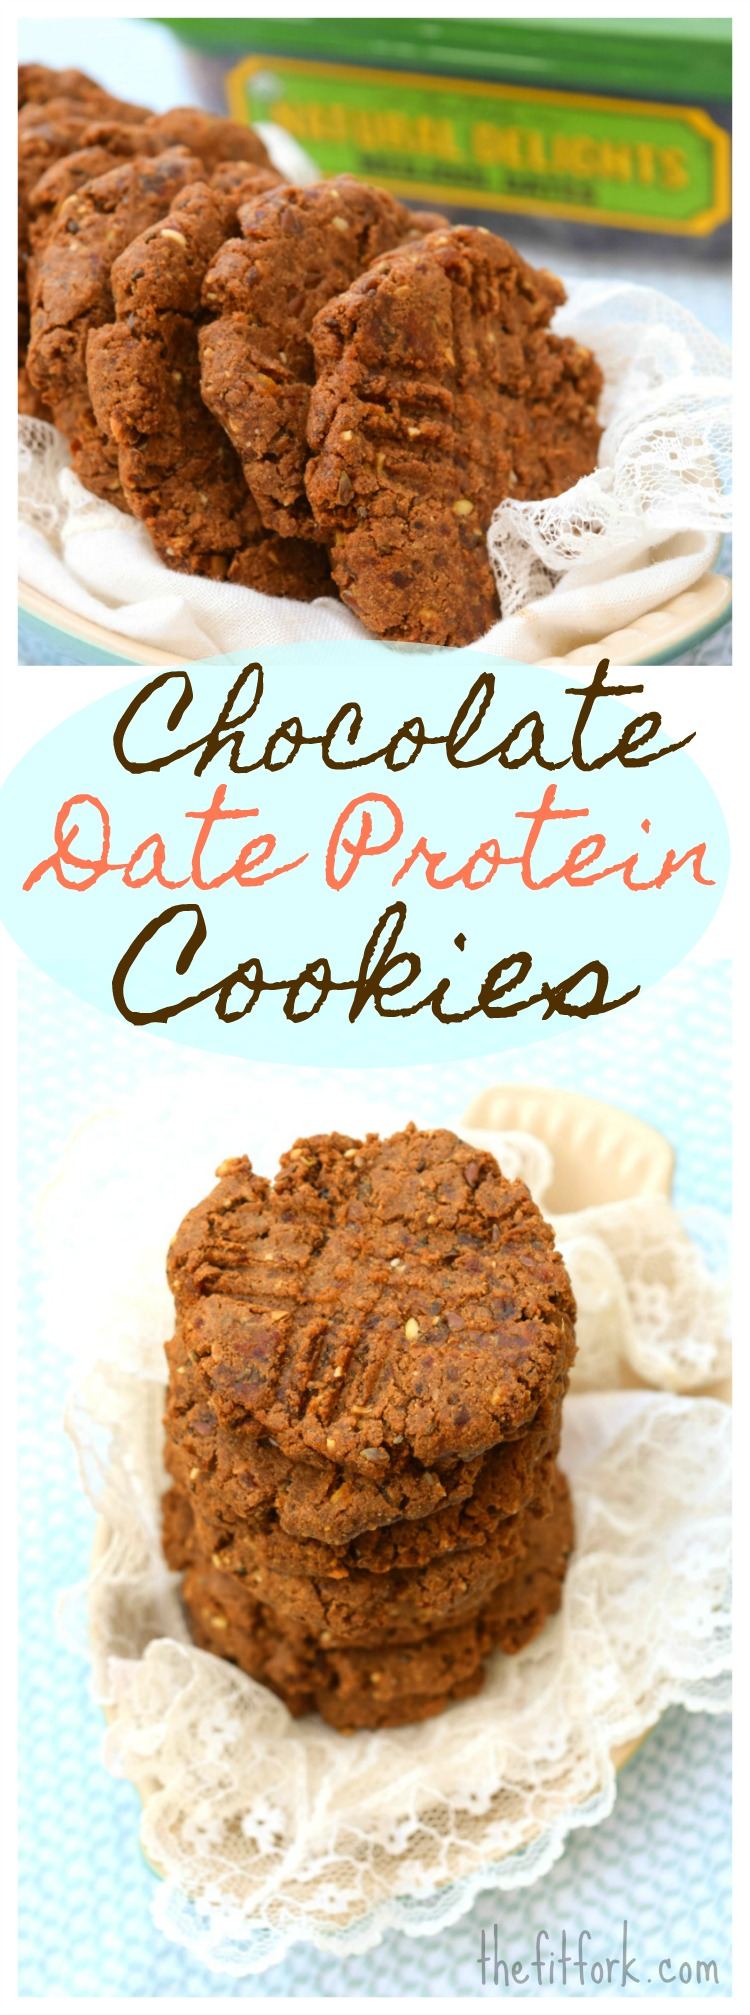 Chocolate Date Protein Cookies - absolutely no refined sugars,  only Medjool dates! Lots of healthy complex carbs balanced by a bit of protein to help optimize sports performance and workout recovery. Also gluten-free and easy to make!